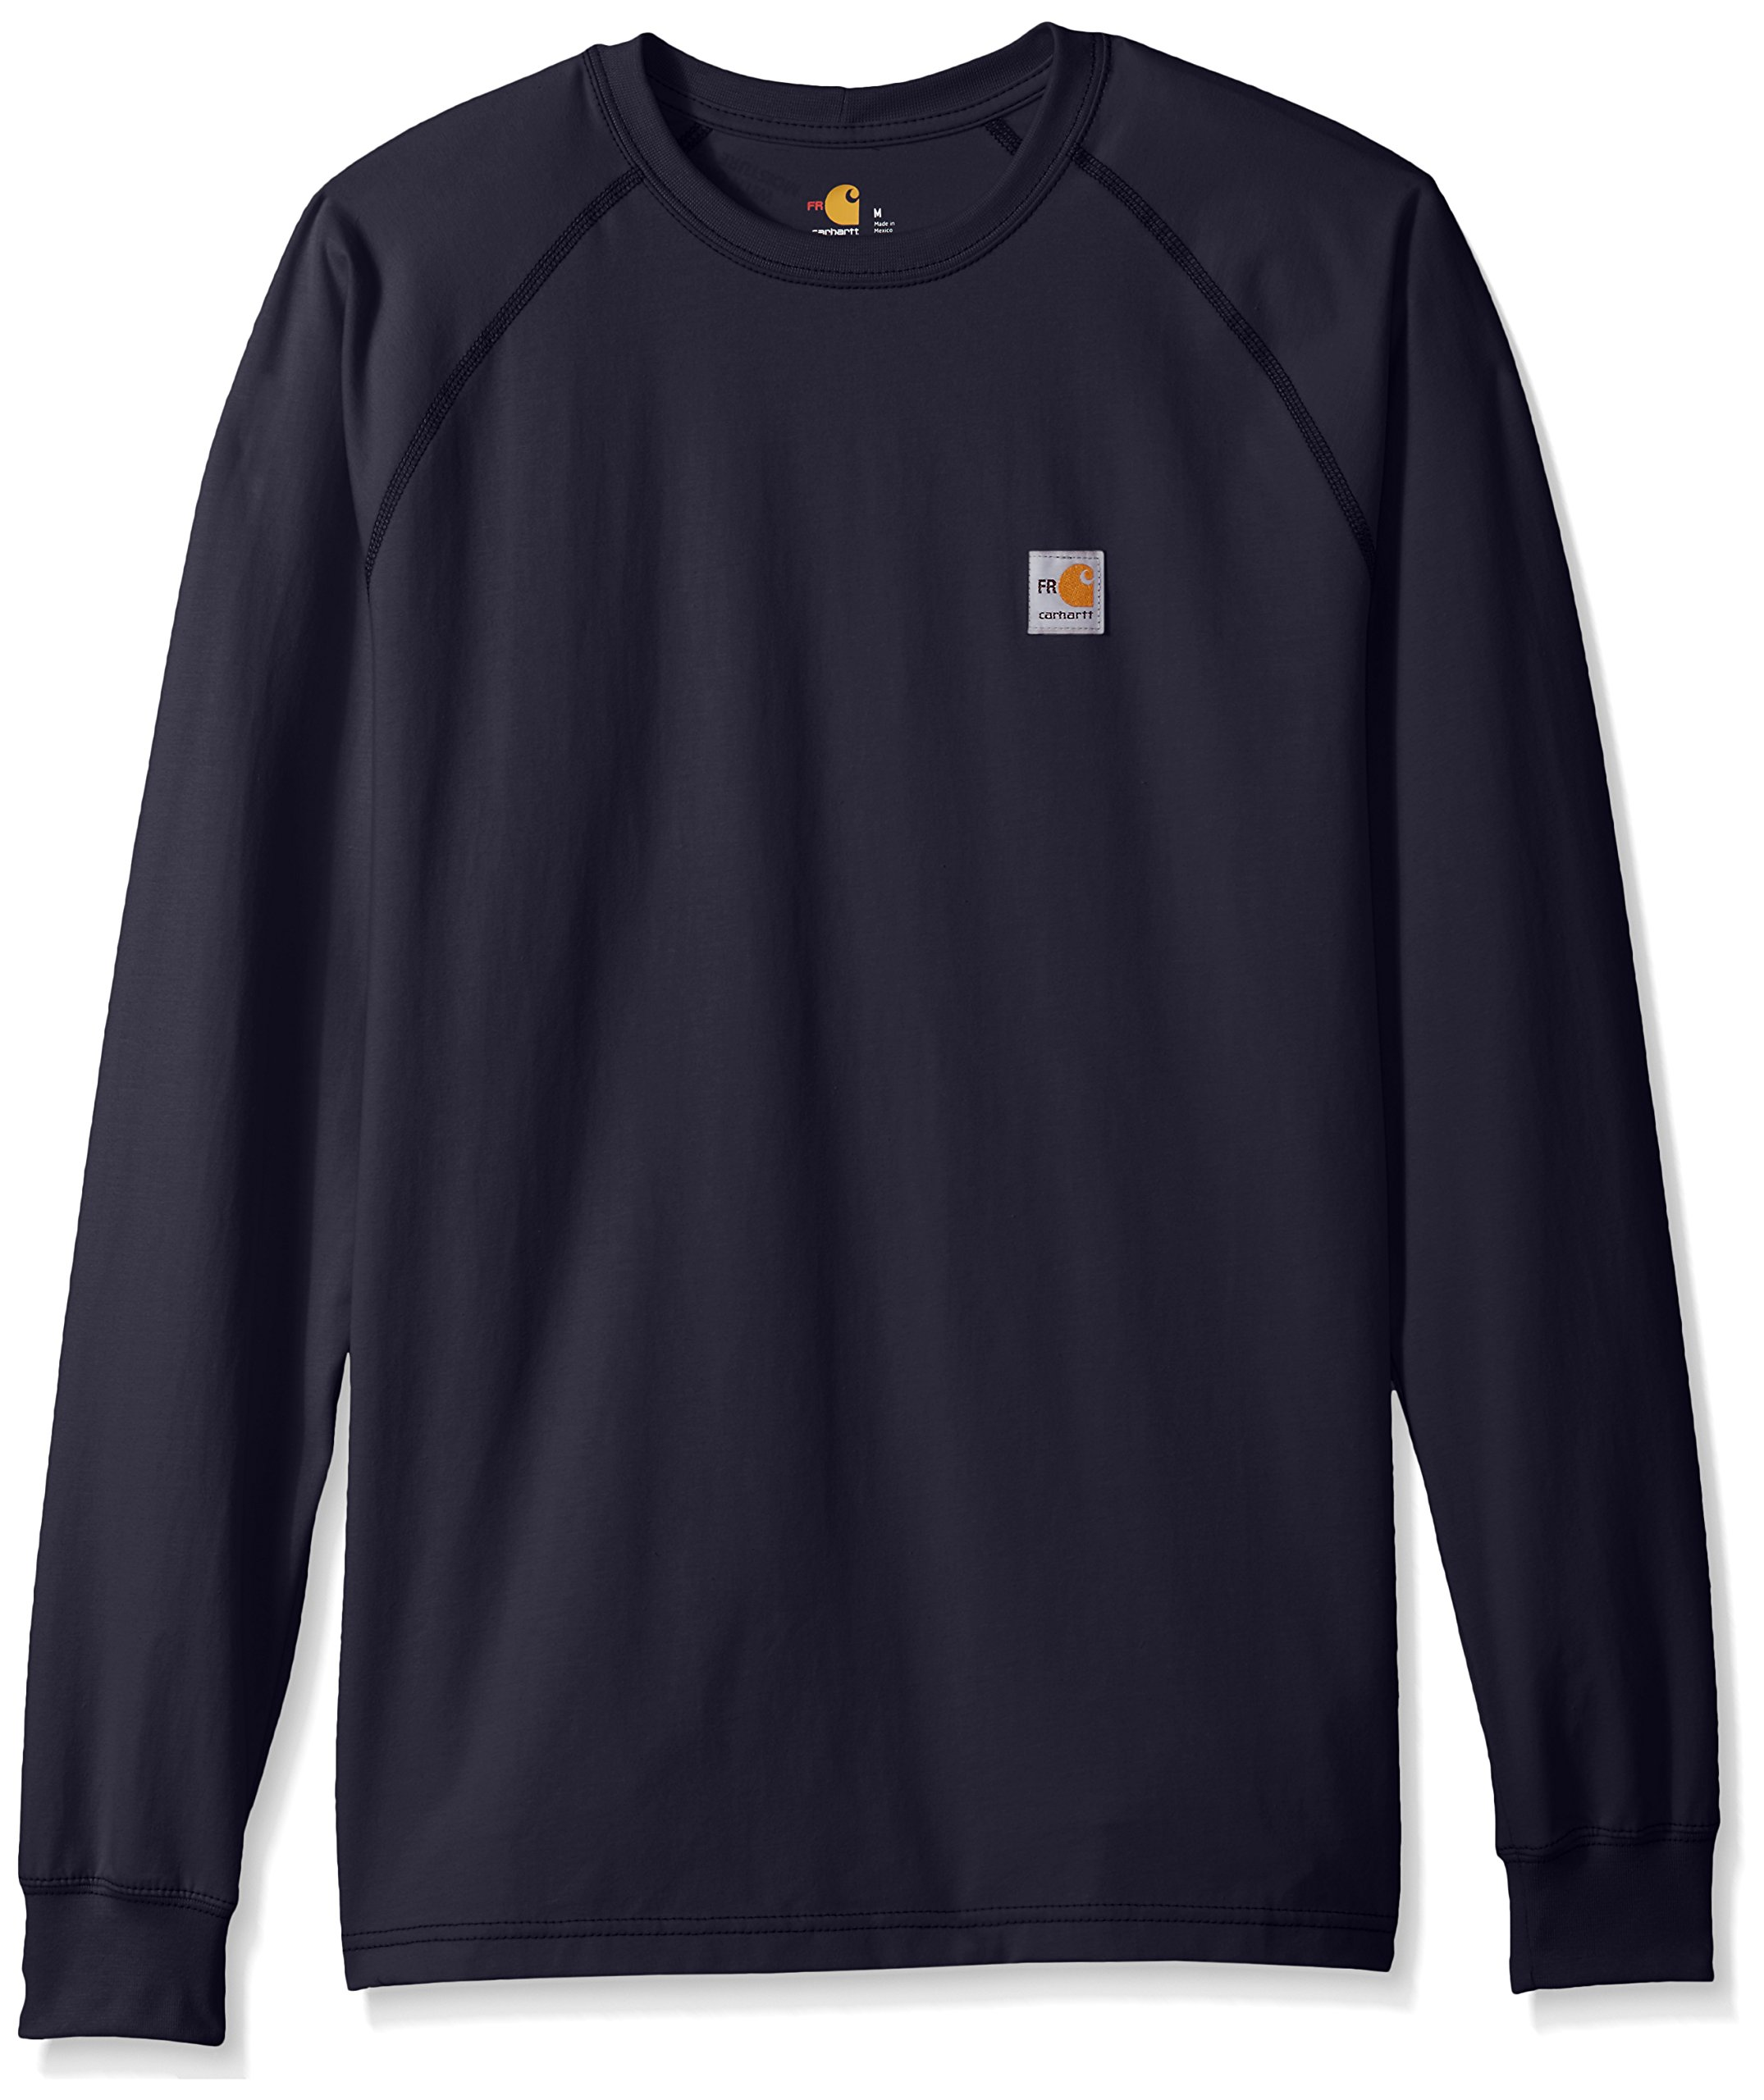 Carhartt Men's Flame-Resistant Force Long Sleeve T-Shirt Class 3, Dark Navy, Medium